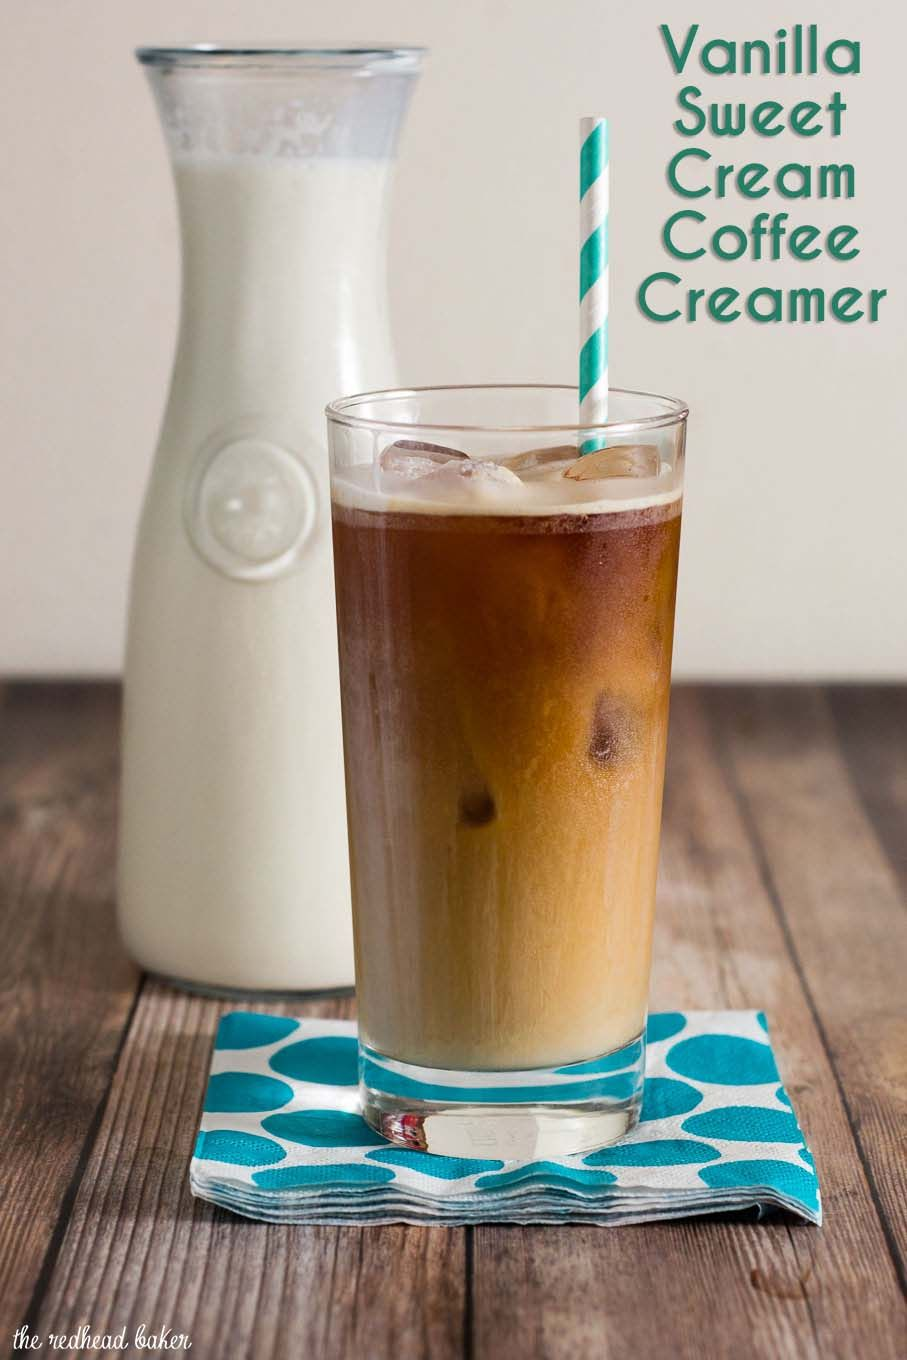 When it's too hot for hot coffee, make some cold-brew coffee, and sweeten it with this homemade vanilla sweet cream coffee creamer.